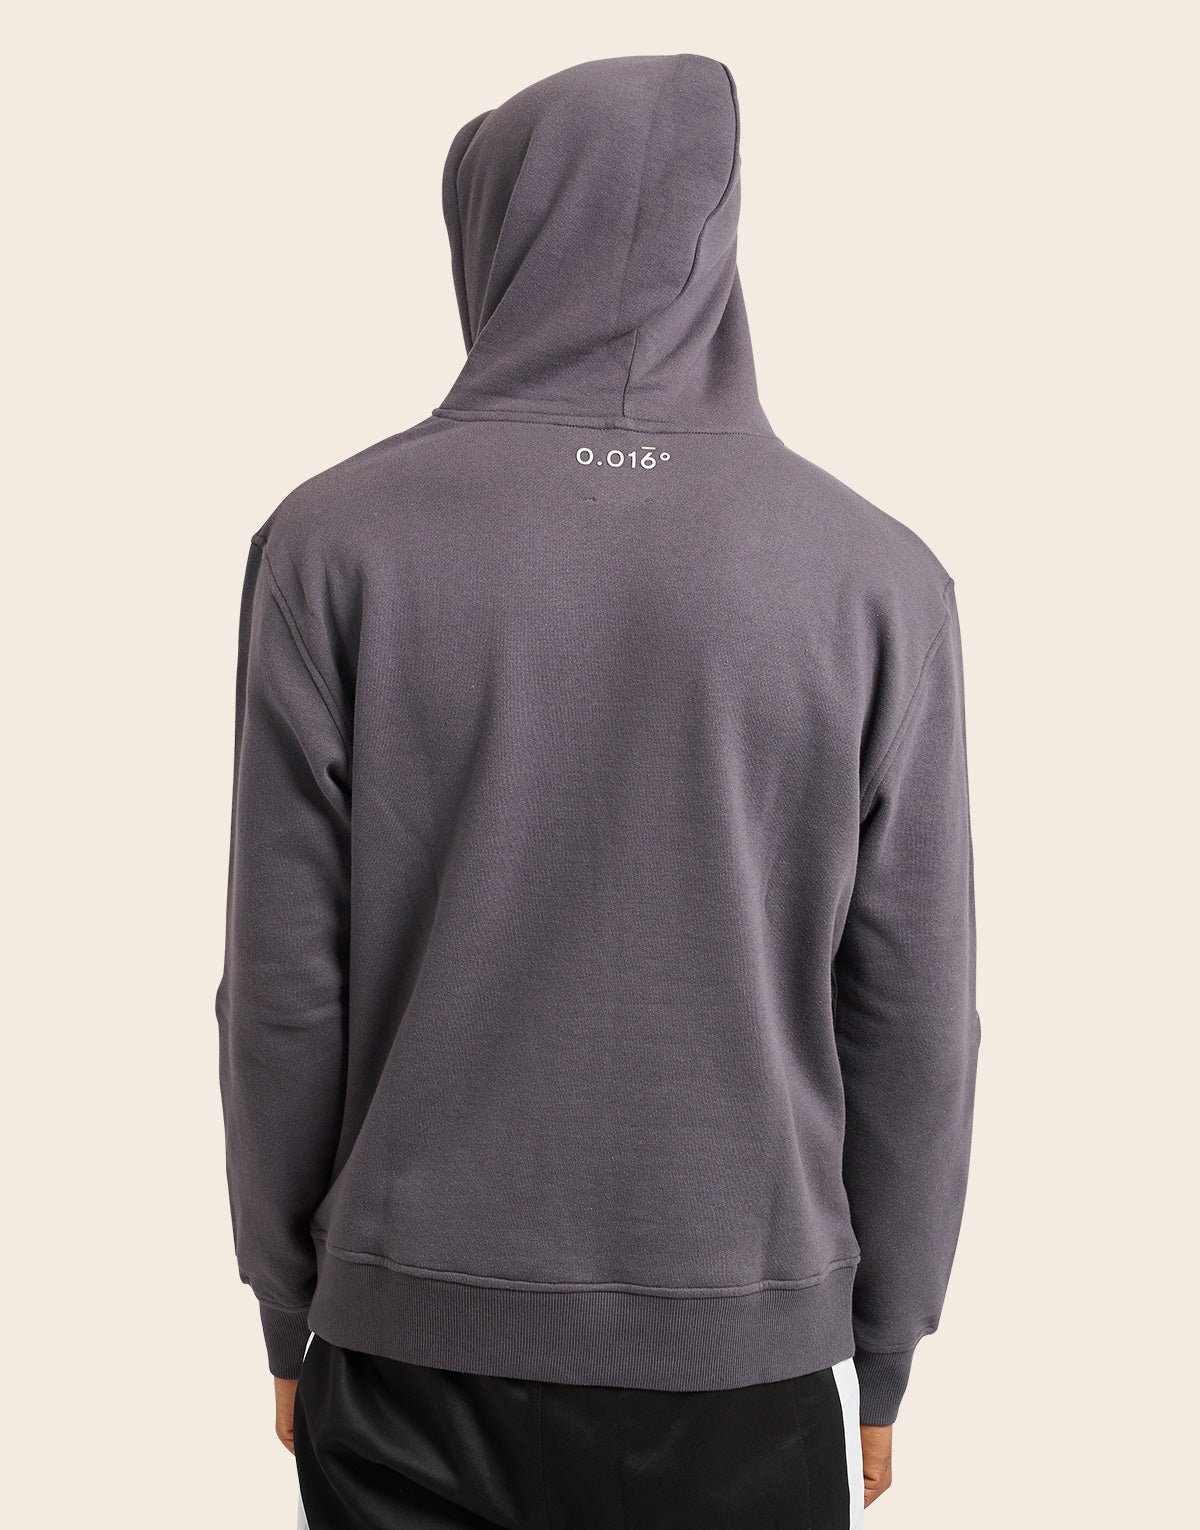 Fiction Hoodie Slate - Arcminute